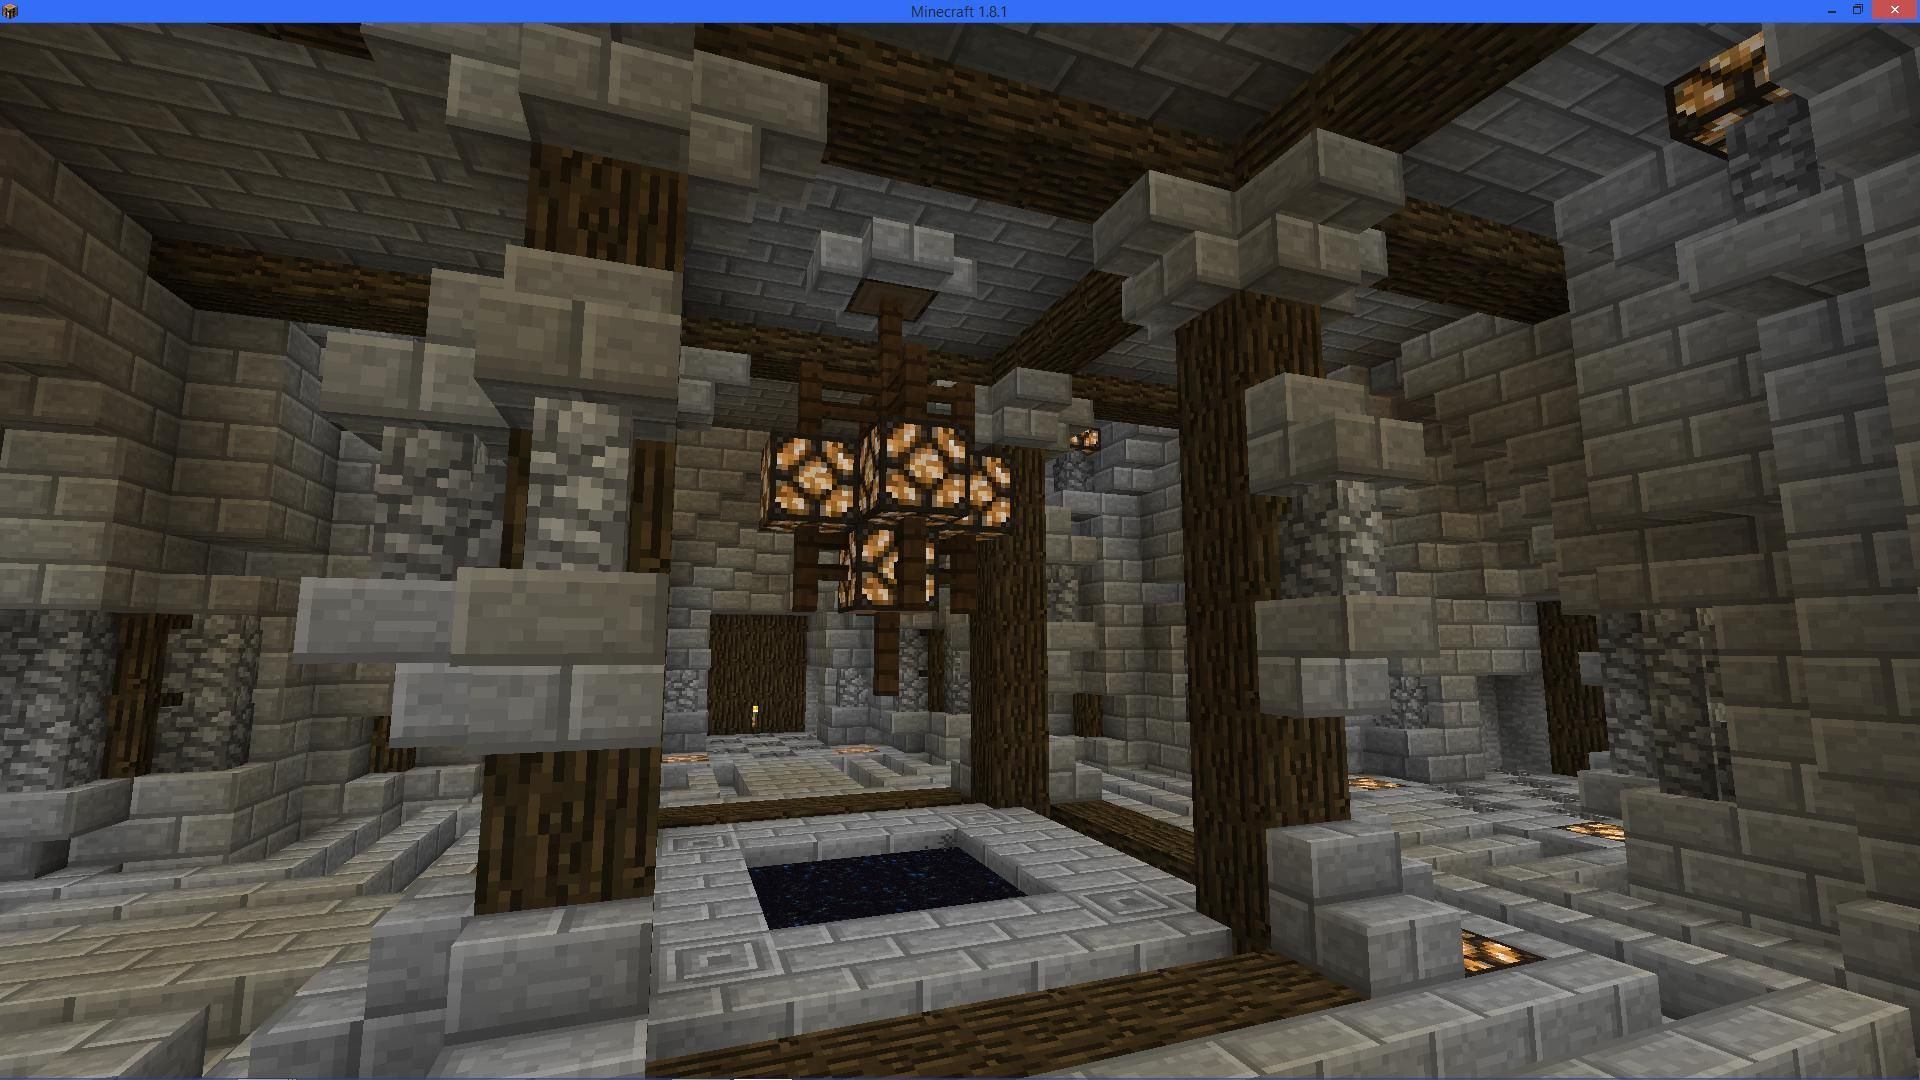 Really Cool End Portal Room In Minecraft Minecraft Minecraft Designs Minecraft Houses